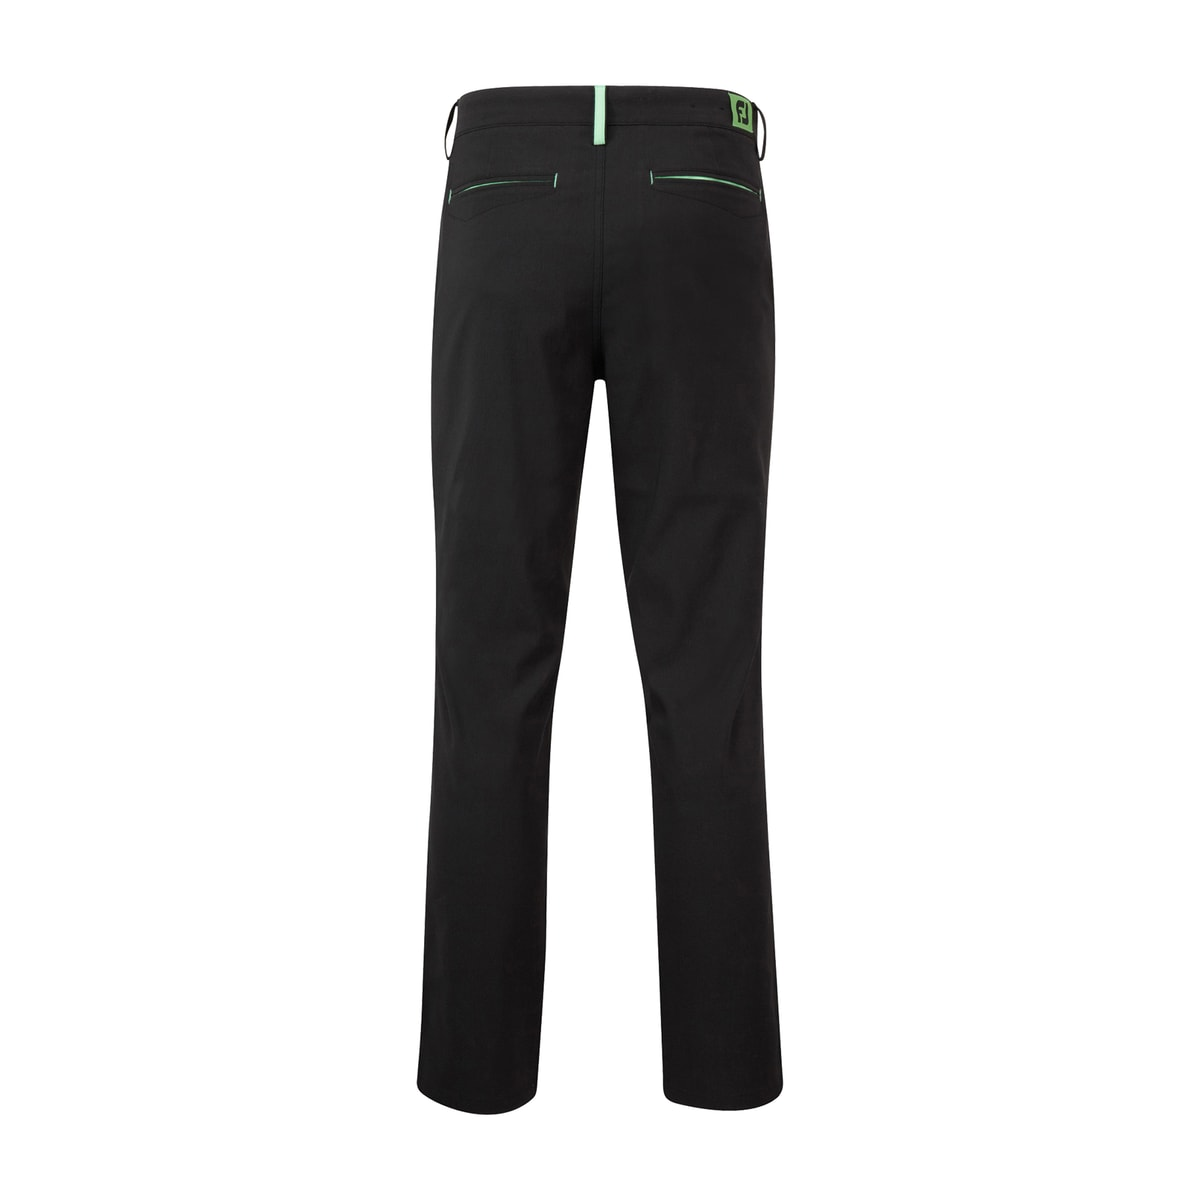 Bedford Trousers Slim Fit